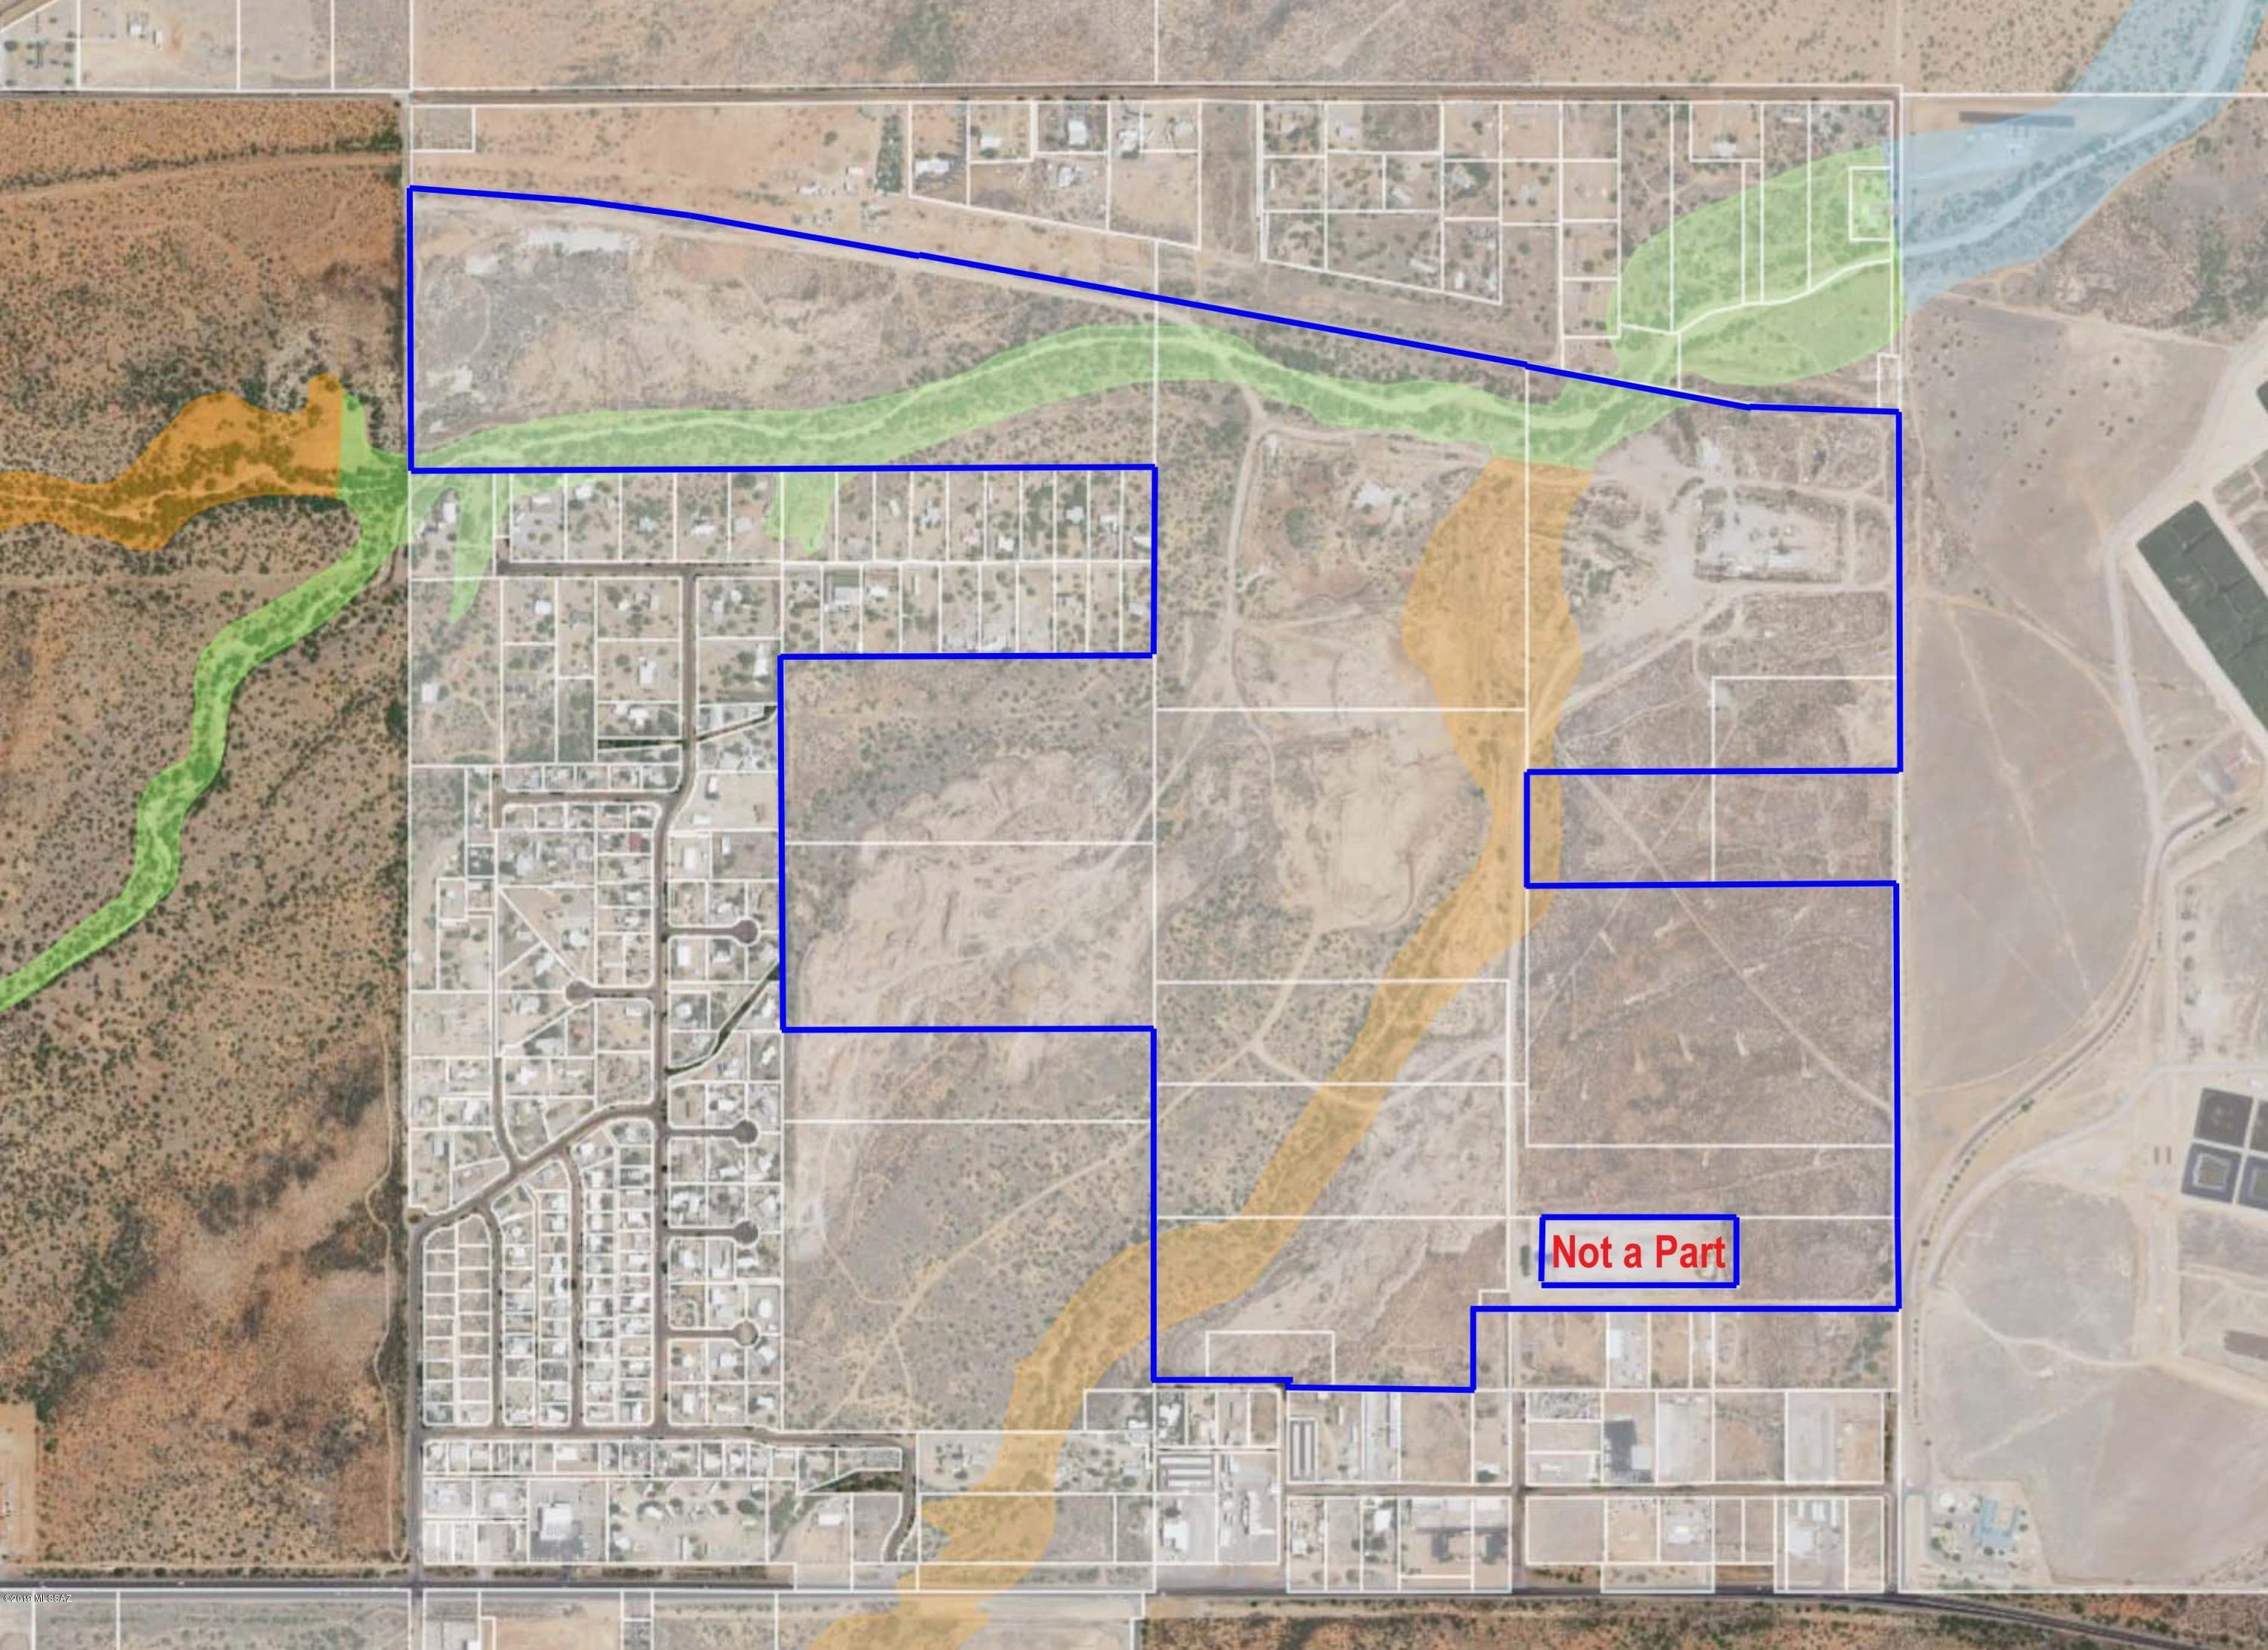 Cochise County, AZ Land: Listing Report | Roy